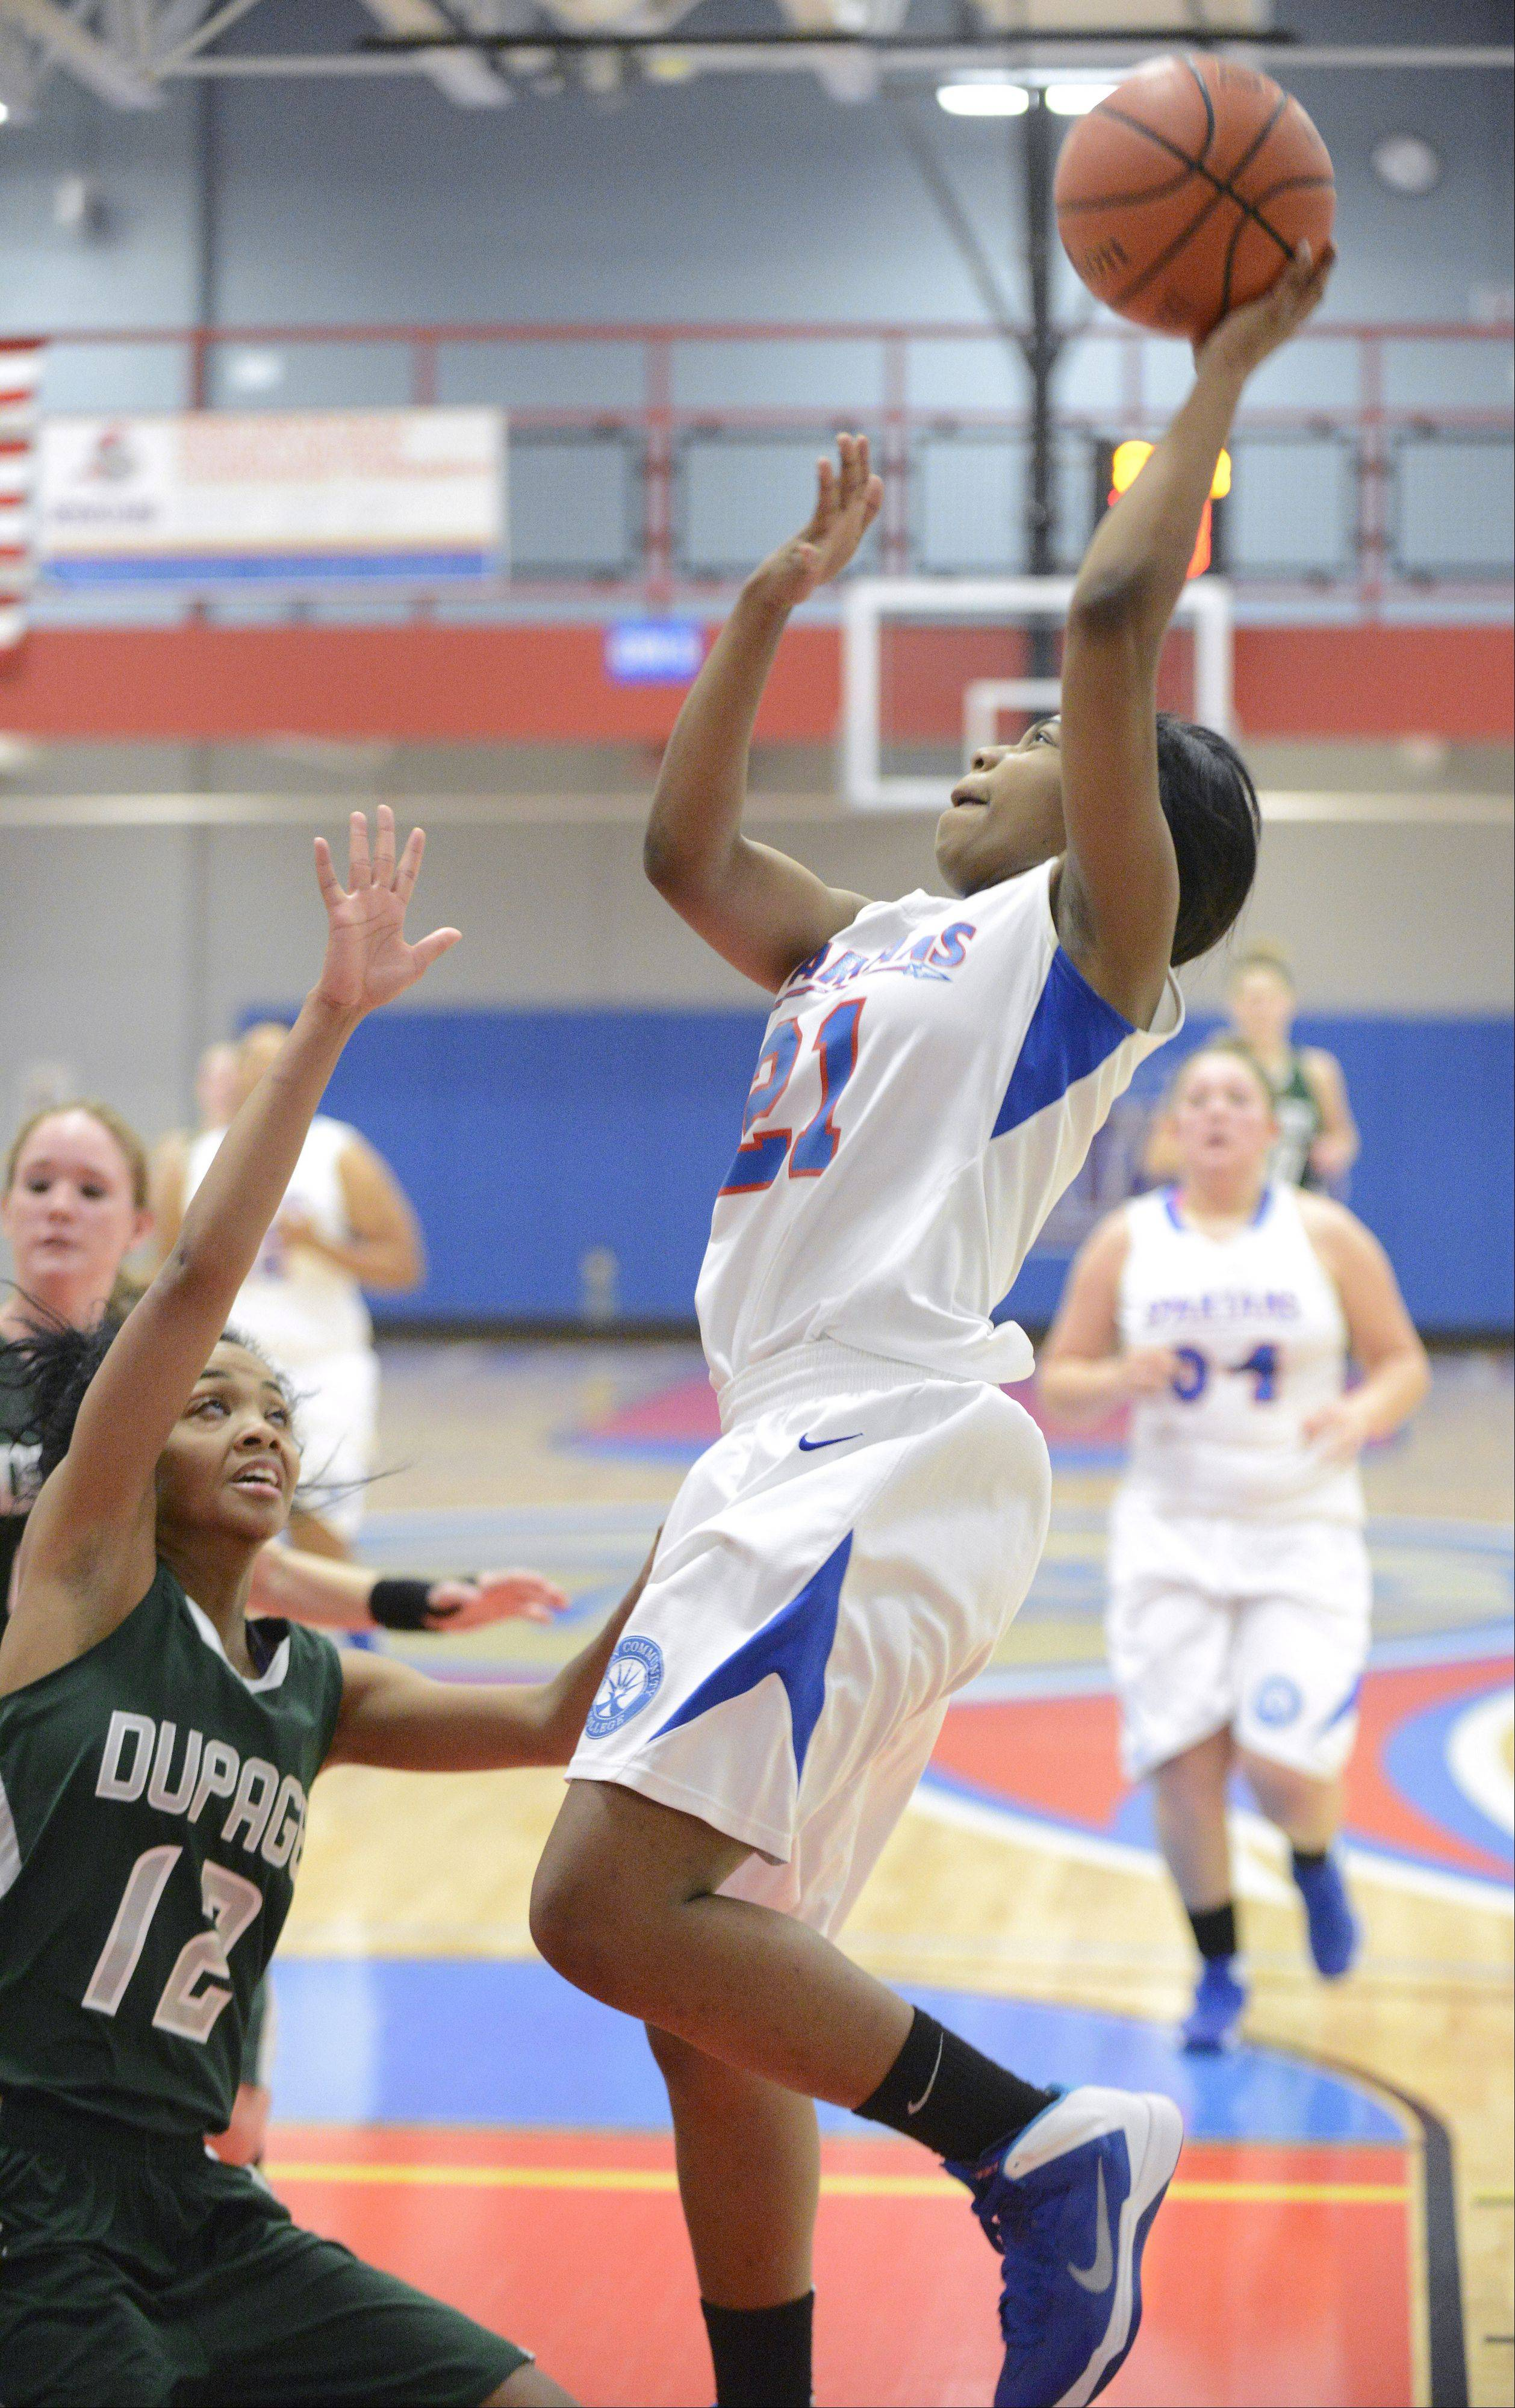 Elgin Community College's Erica Haynes shoots over a block by College of DuPage's Breanna Venson in the second half on Tuesday.